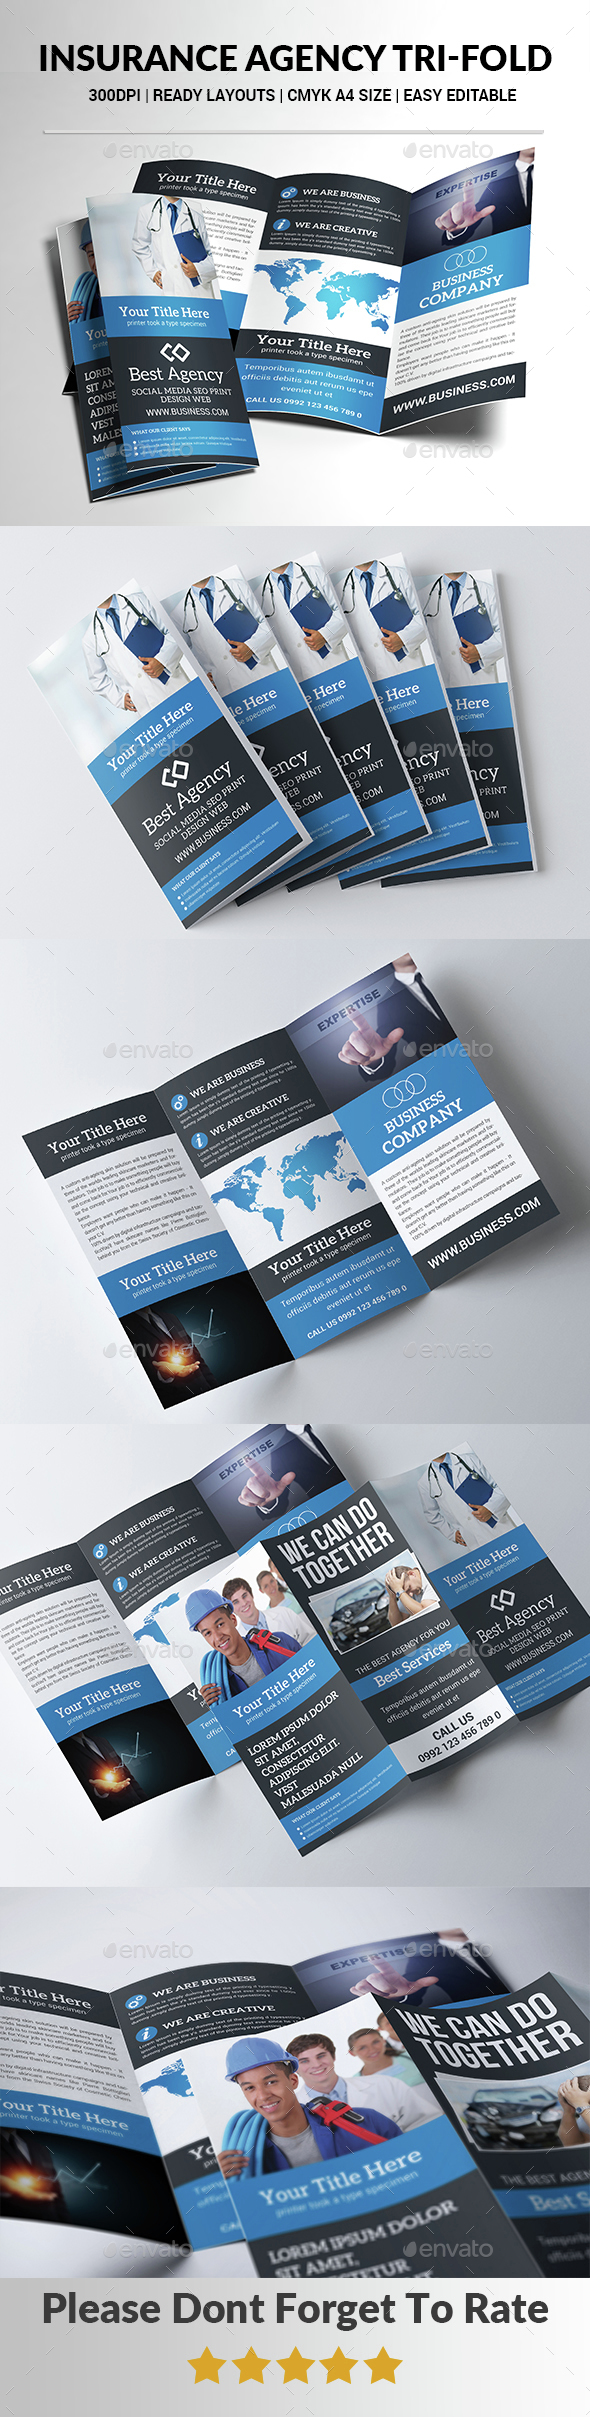 Insurance Agency Tri-Fold  - Brochures Print Templates